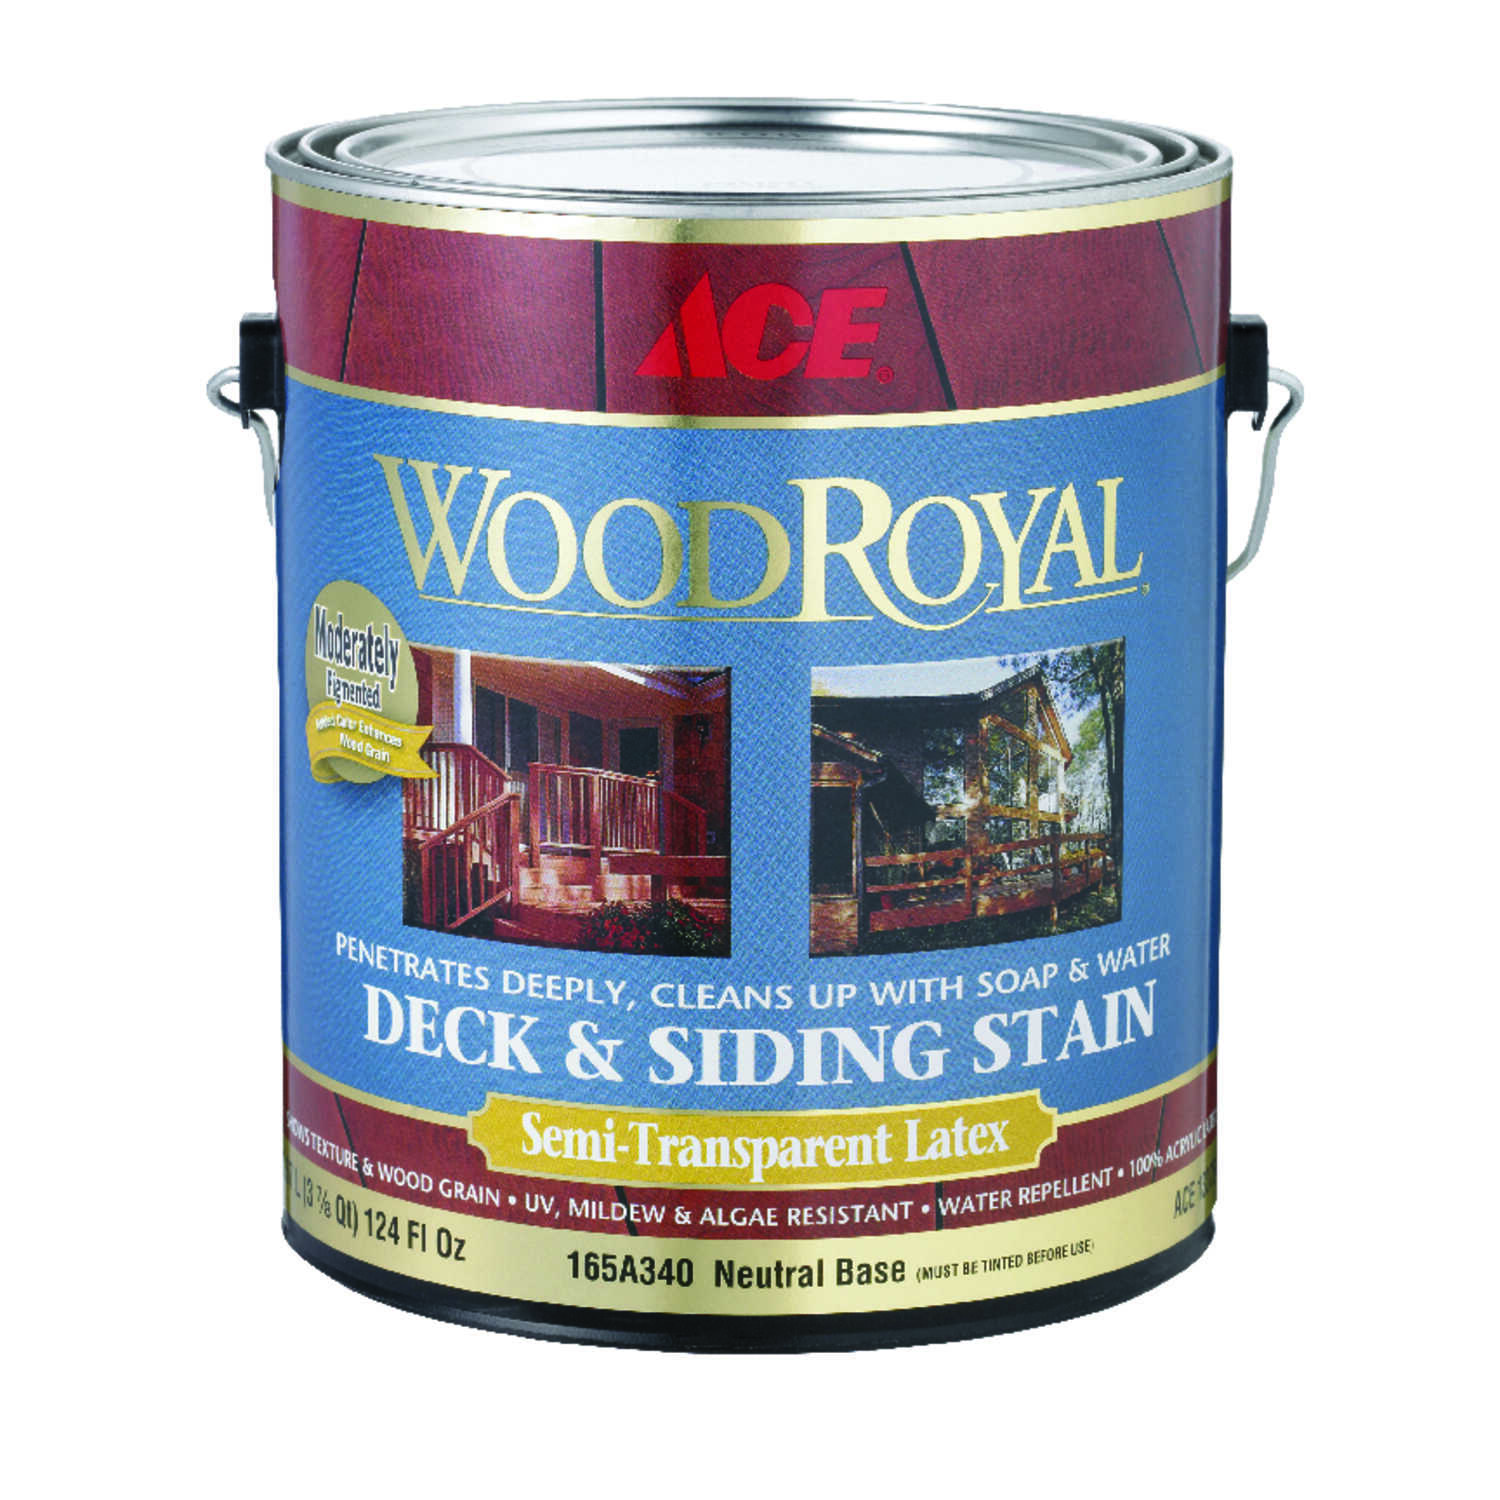 Ace  Wood Royal  Semi-Transparent  Tintable Neutral base  Tint Base  Acrylic  Deck and Siding Stain